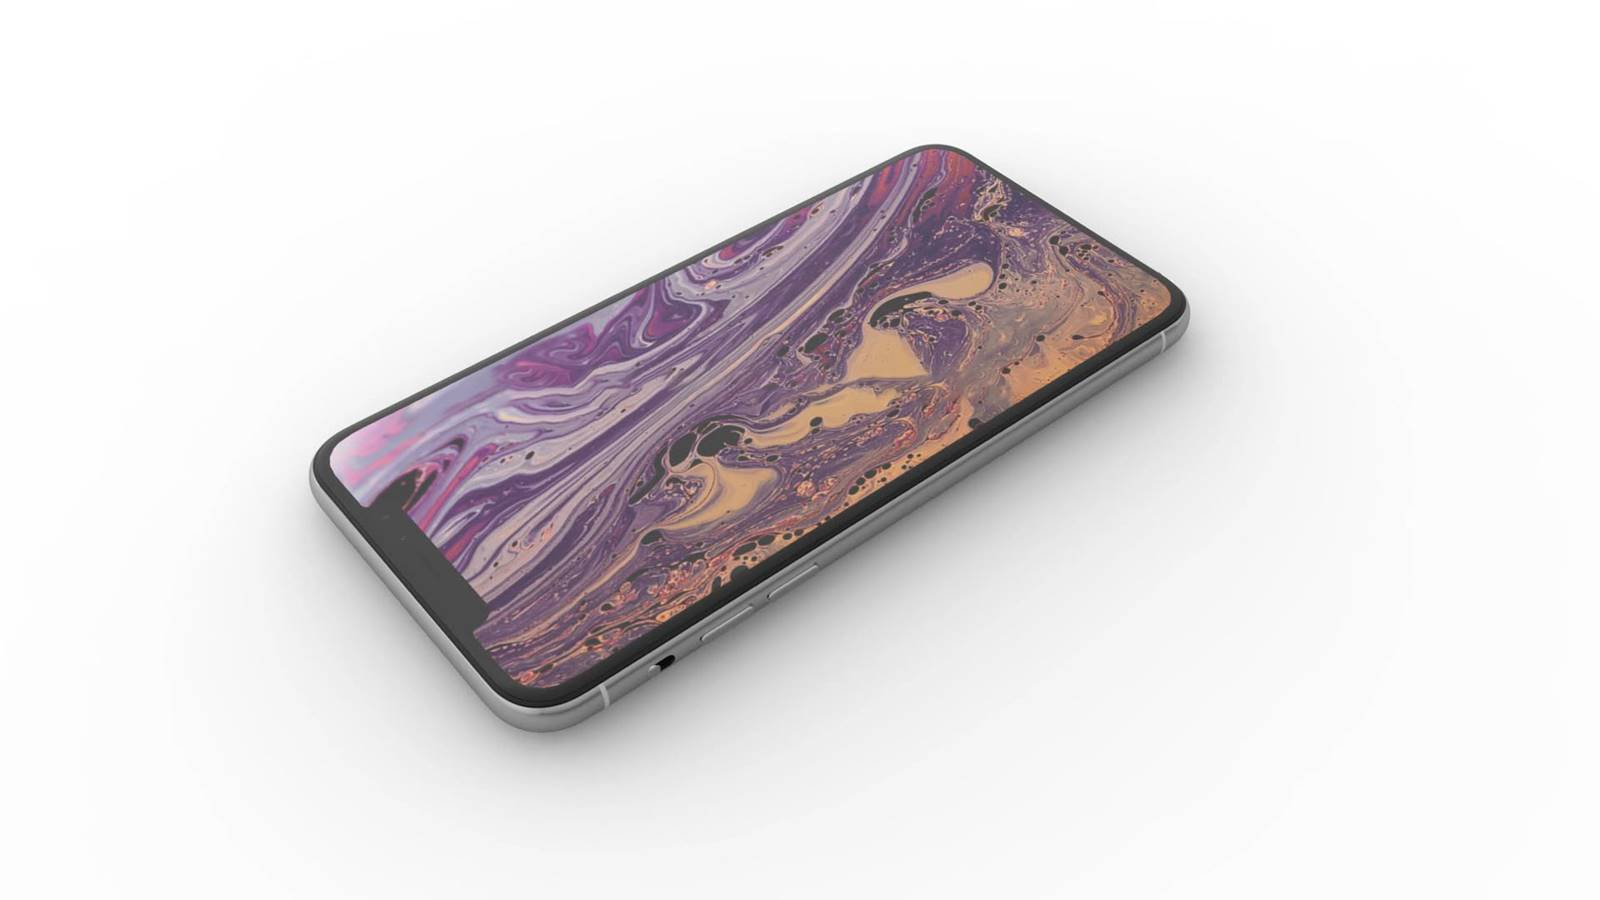 iPhone-11-Max-design-iPhone-XI-Max